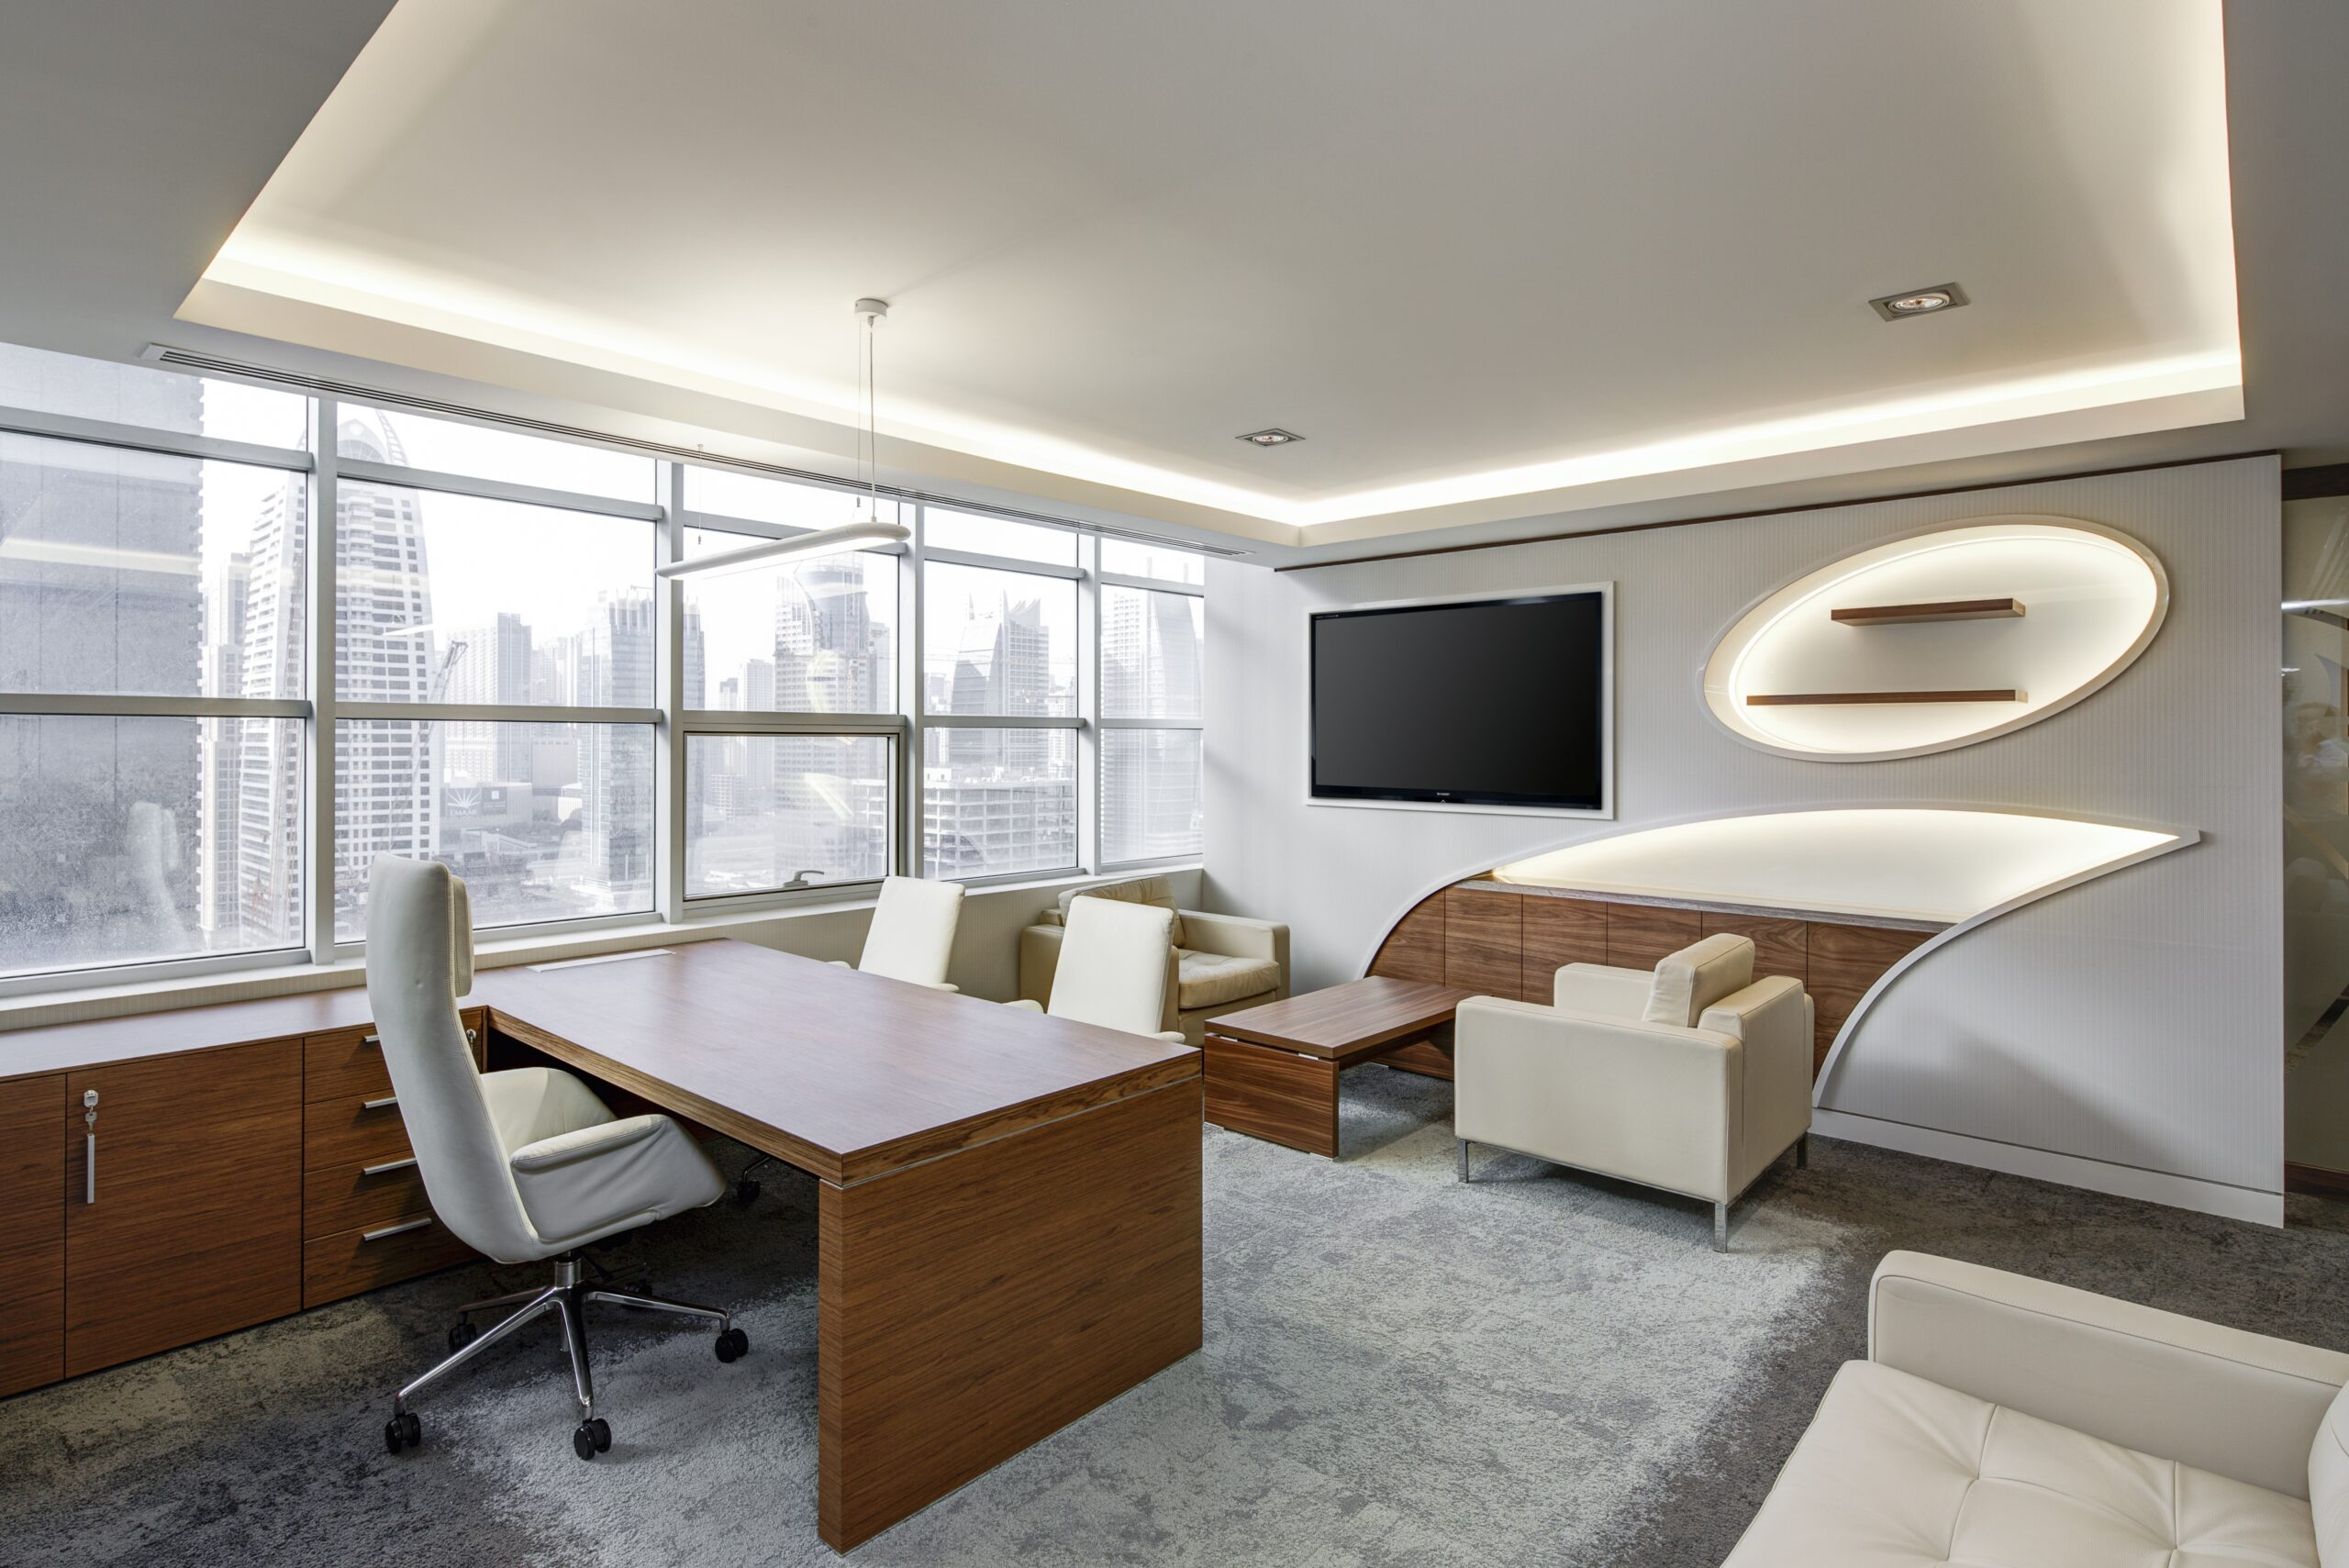 Ways To Make Your Office Seem More Custom